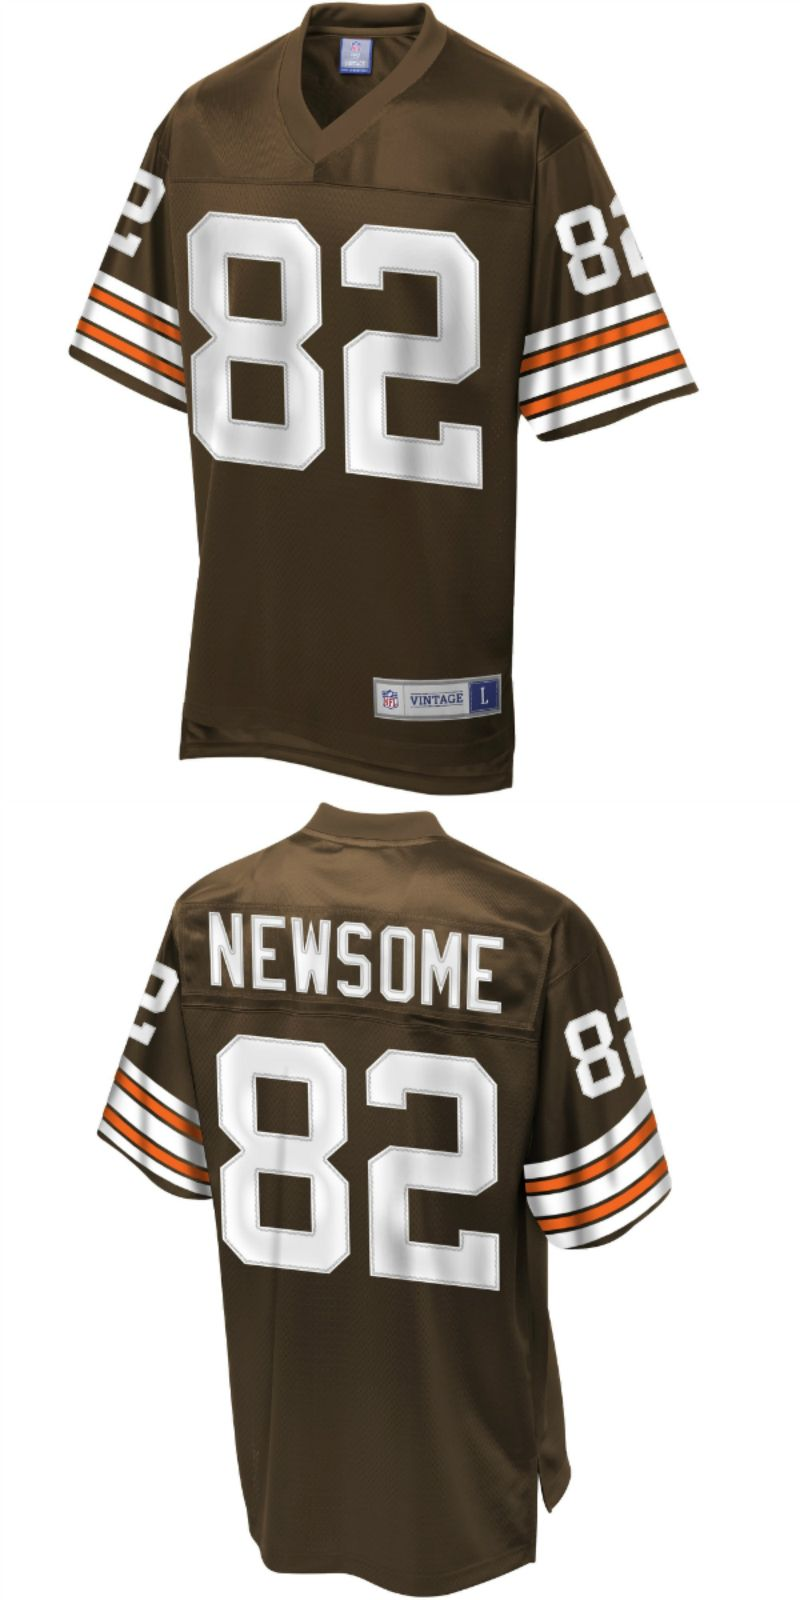 new styles 2dfdb 344bc UP TO 70% OFF. Men's NFL Pro Line Cleveland Browns Historic ...